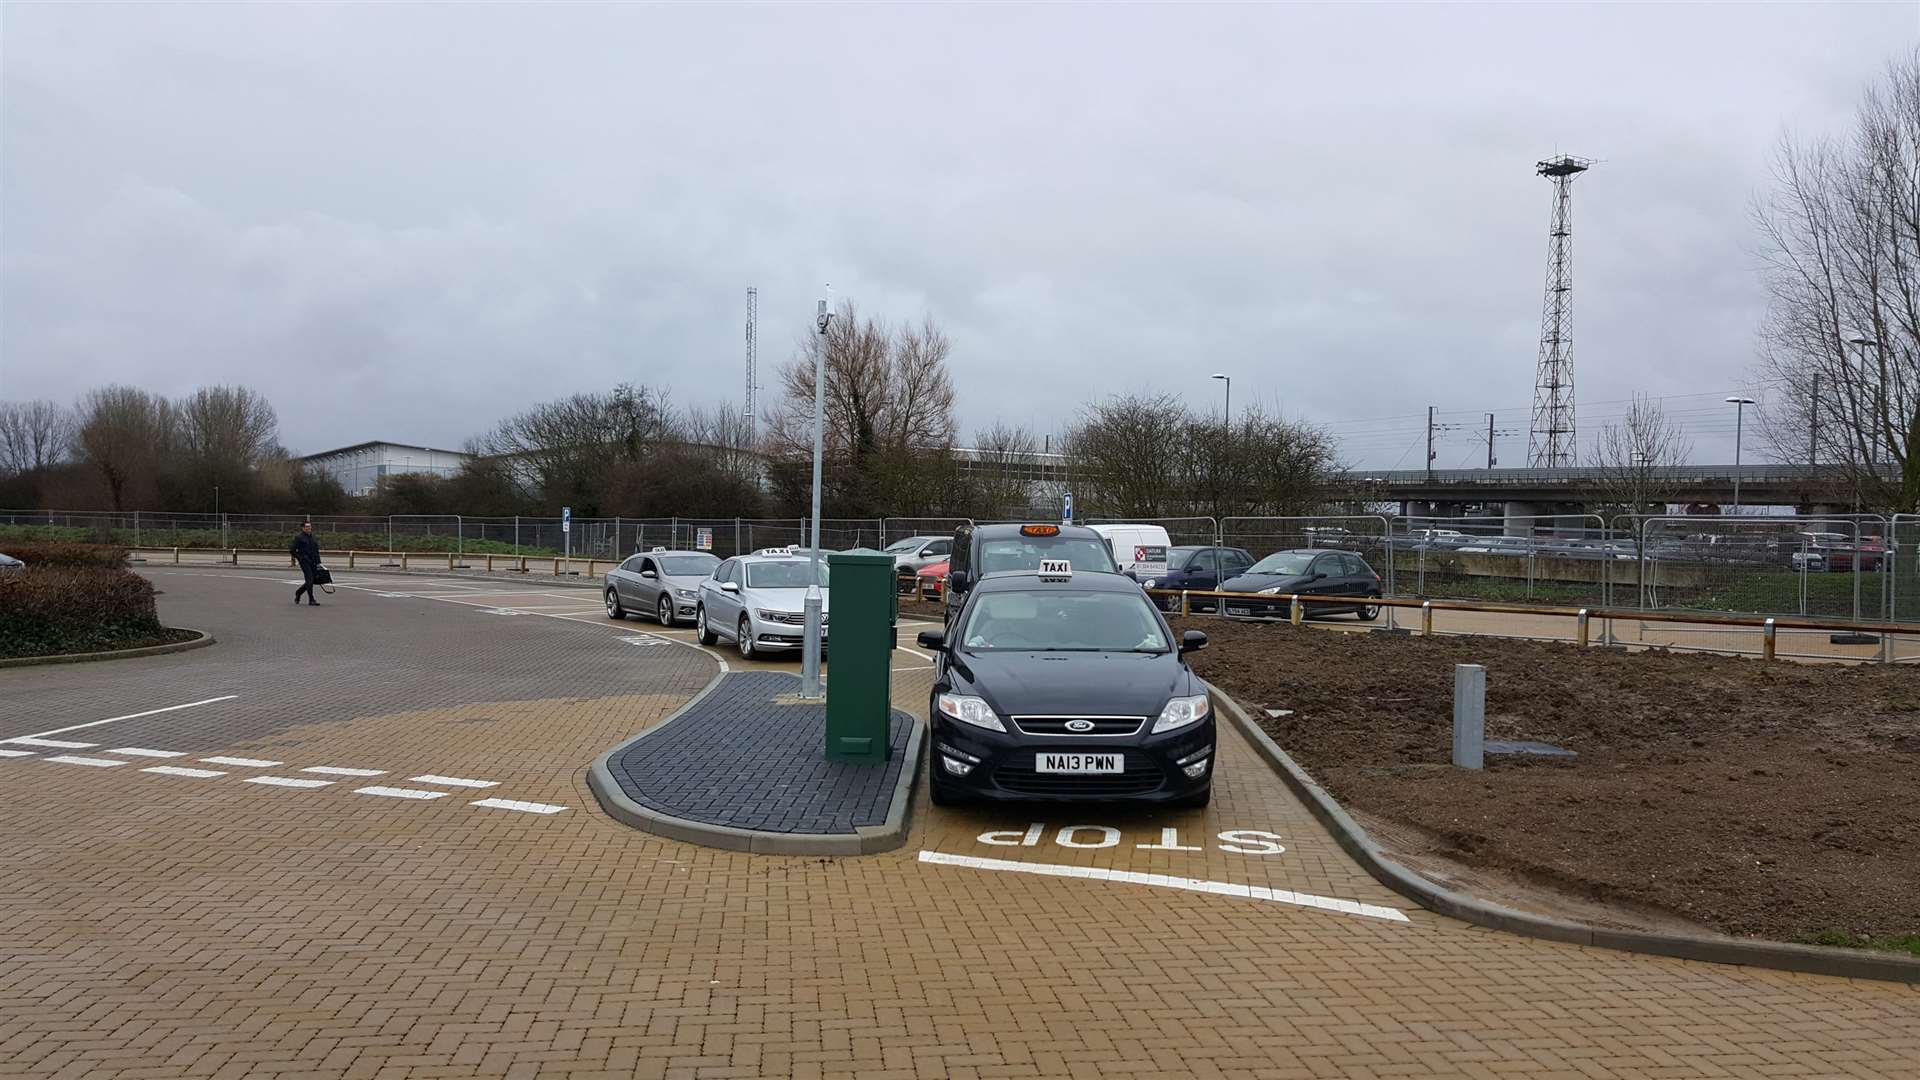 The area where taxis have to wait in the Stour Centre car park